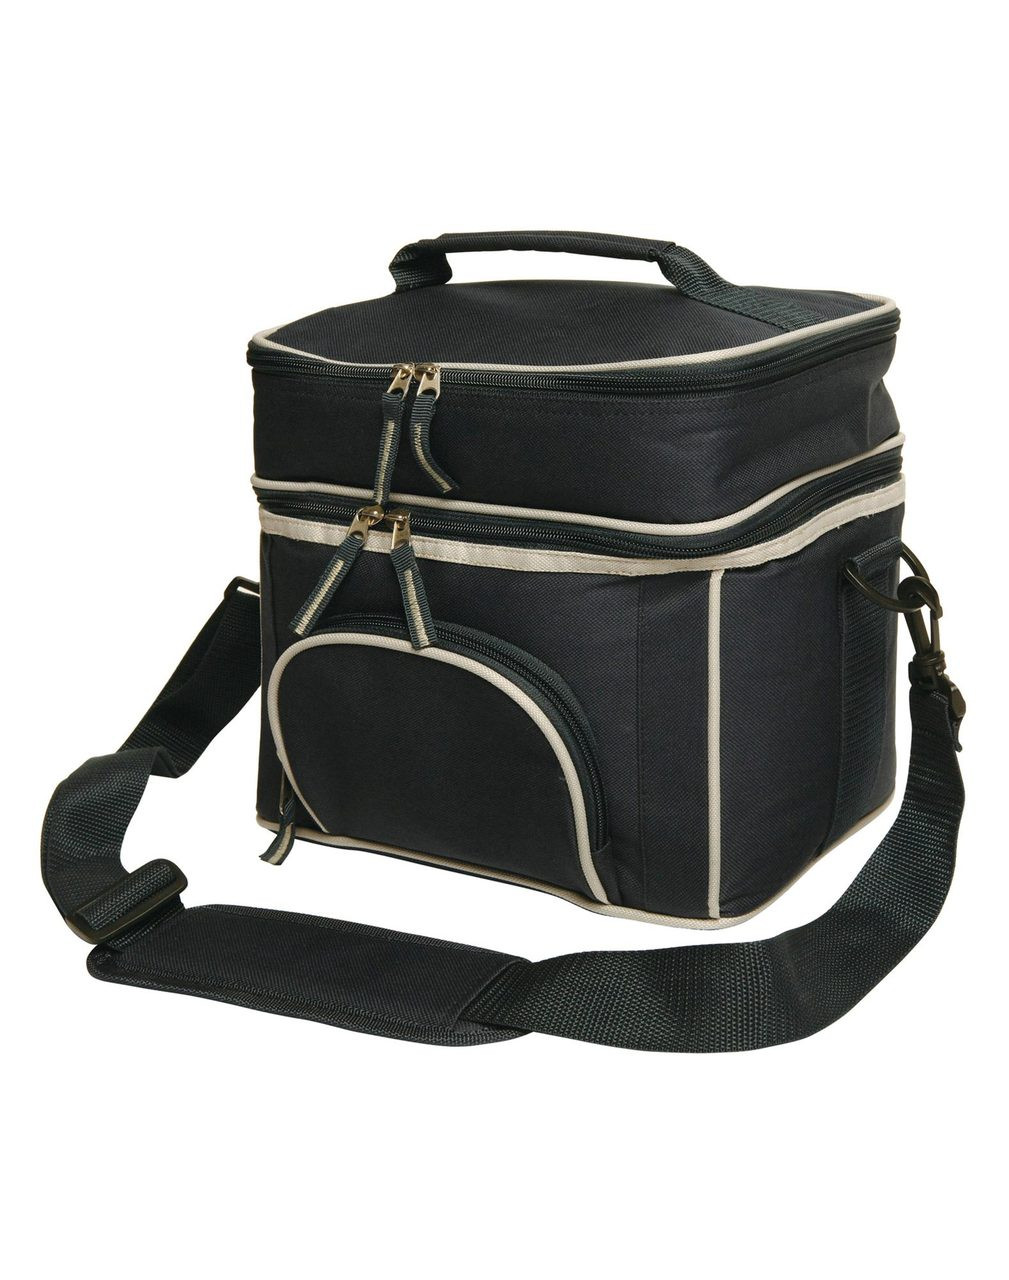 Picnic Cooler Bag 2 Layers Lunch Box Plain Bags